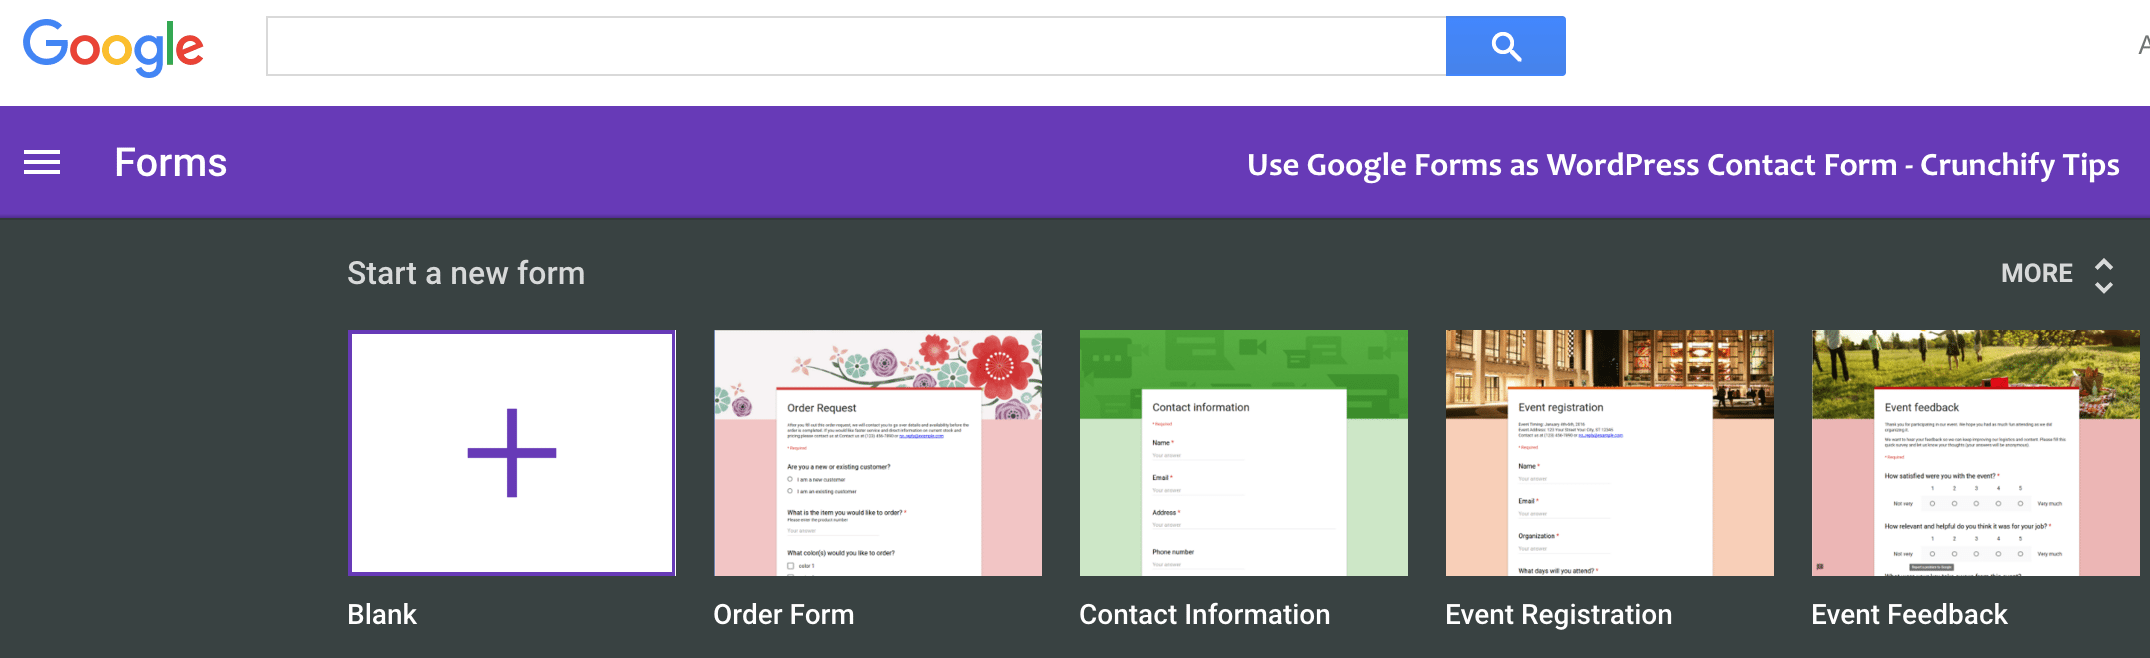 Google Contact Form - Crunchify Tips